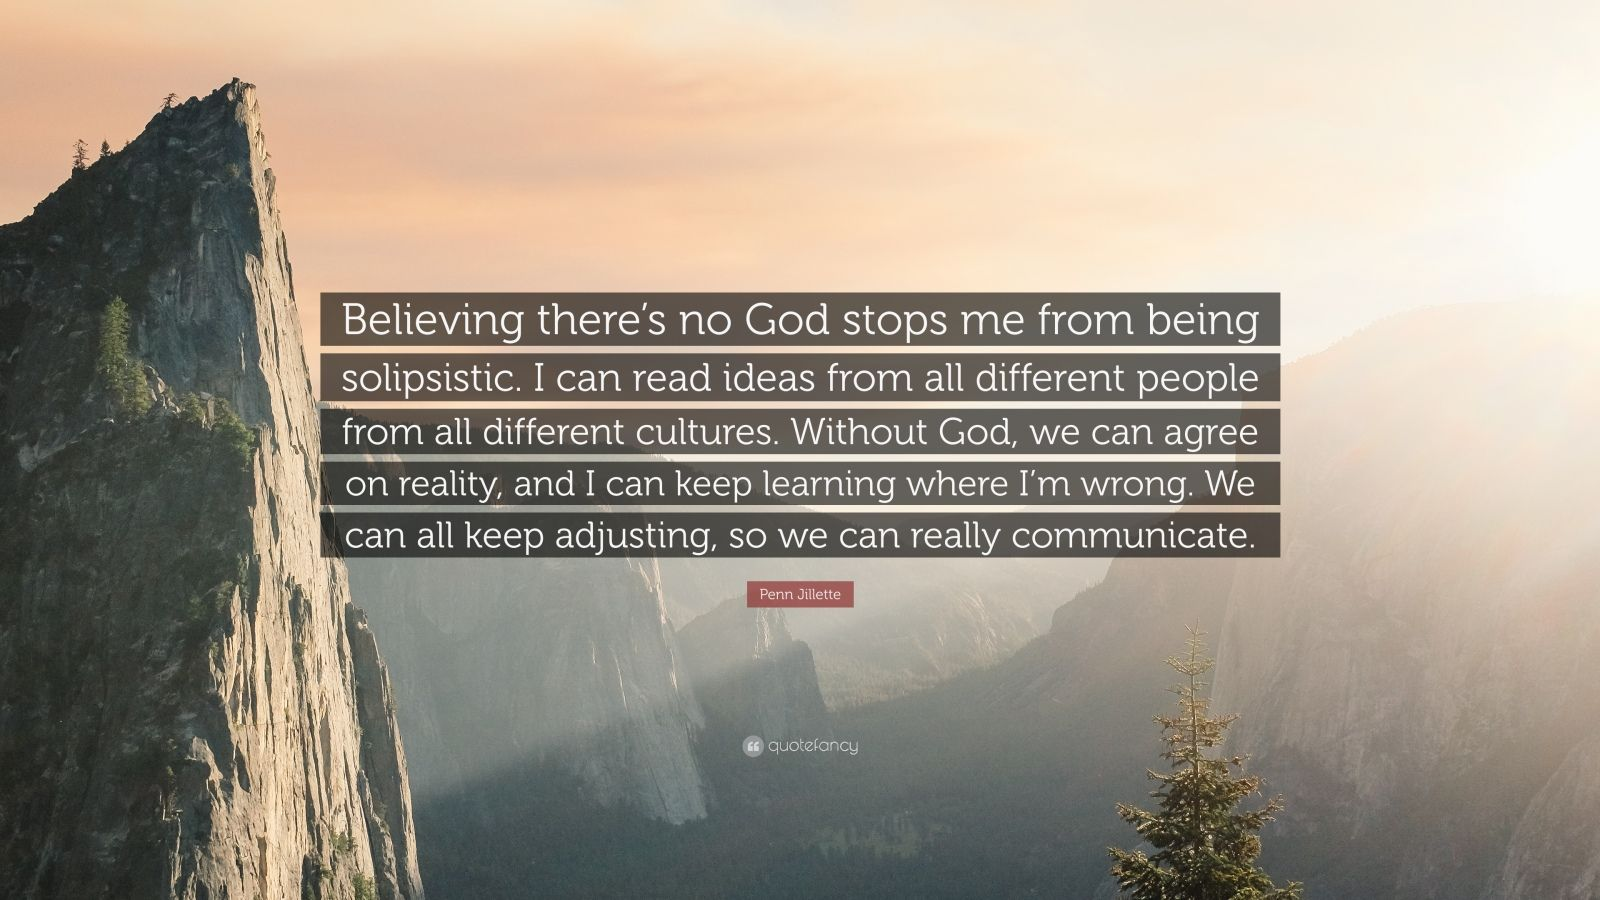 "Penn Jillette Quote: ""Believing there's no God stops me from being solipsistic. I can read ideas from all different people from all different cultures. Without God, we can agree on reality, and I can keep learning where I'm wrong. We can all keep adjusting, so we can really communicate."""